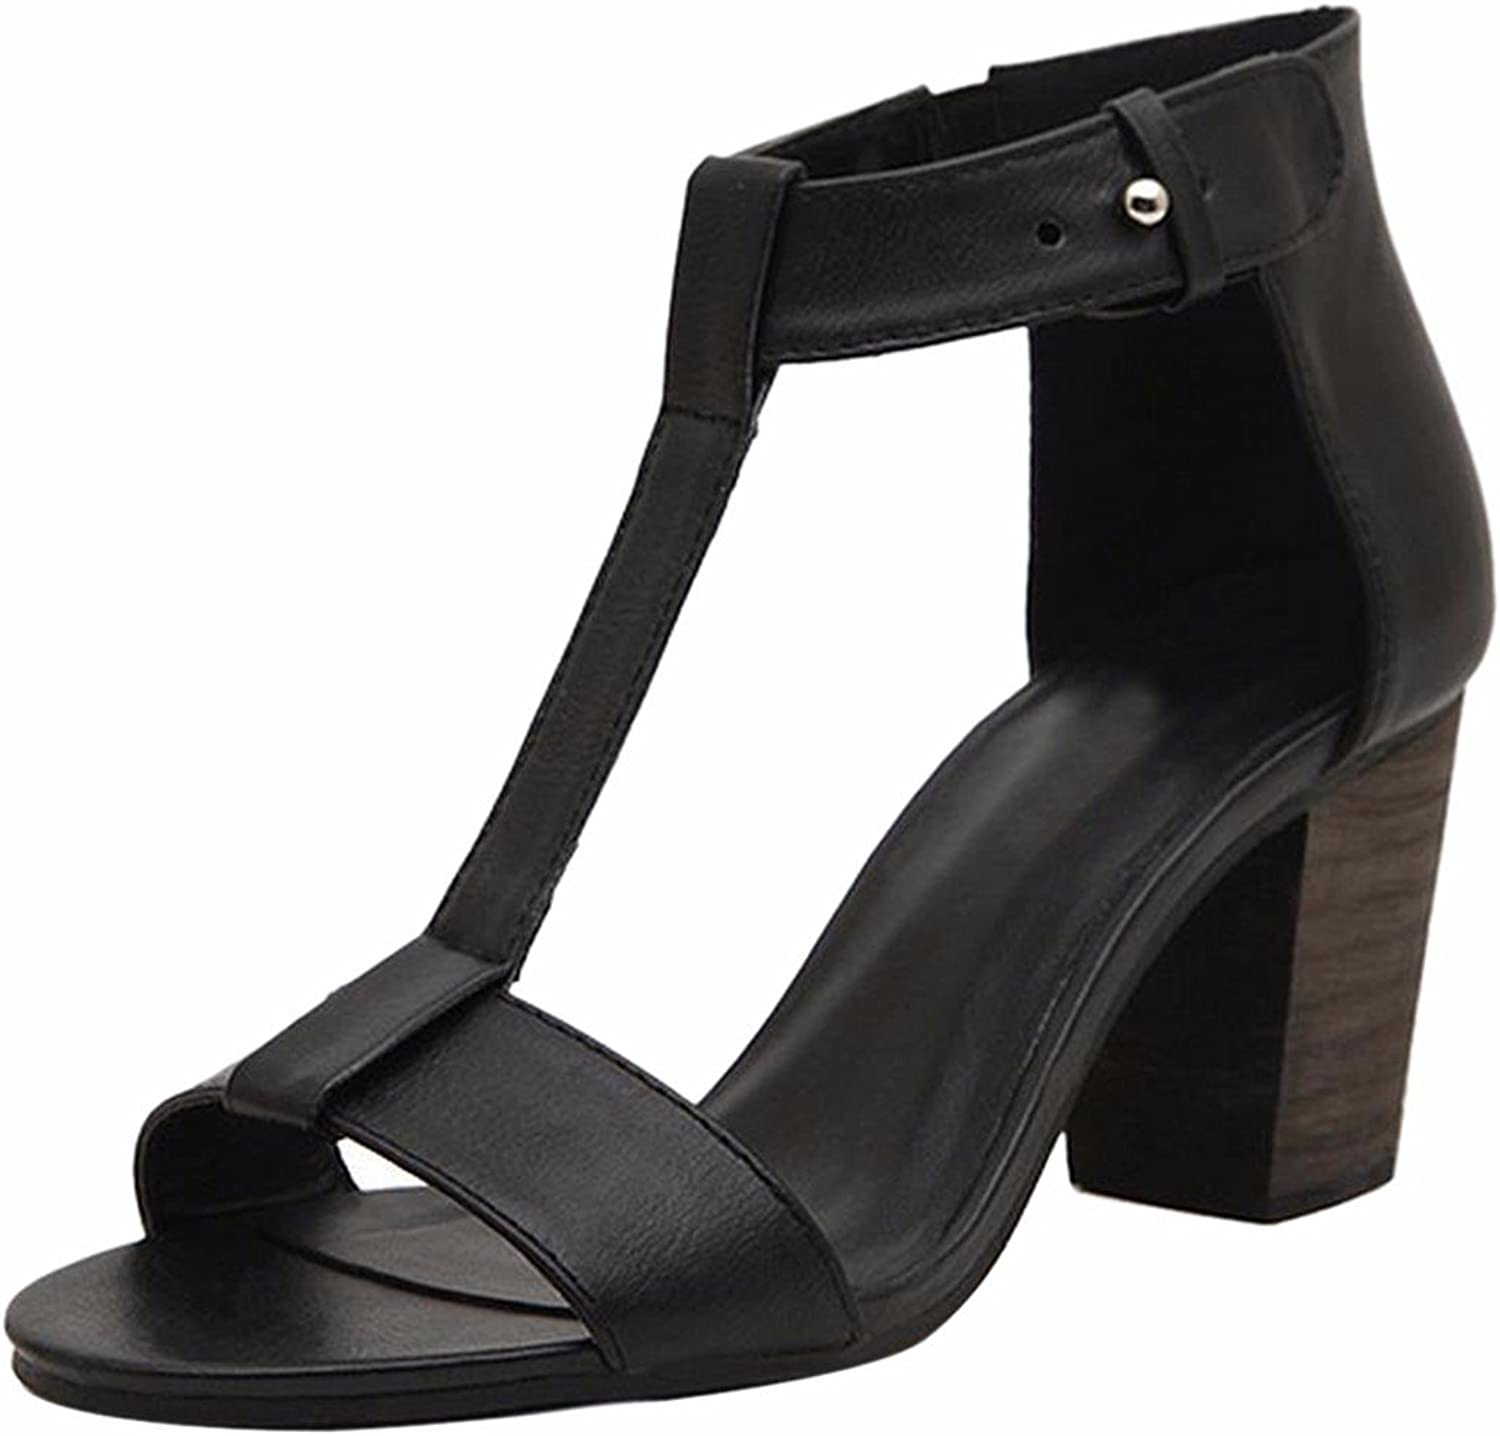 Qiyun Vintage Retro Women Open Toe Summer Sandals Ankle Strap Party Chunky Heel shoes